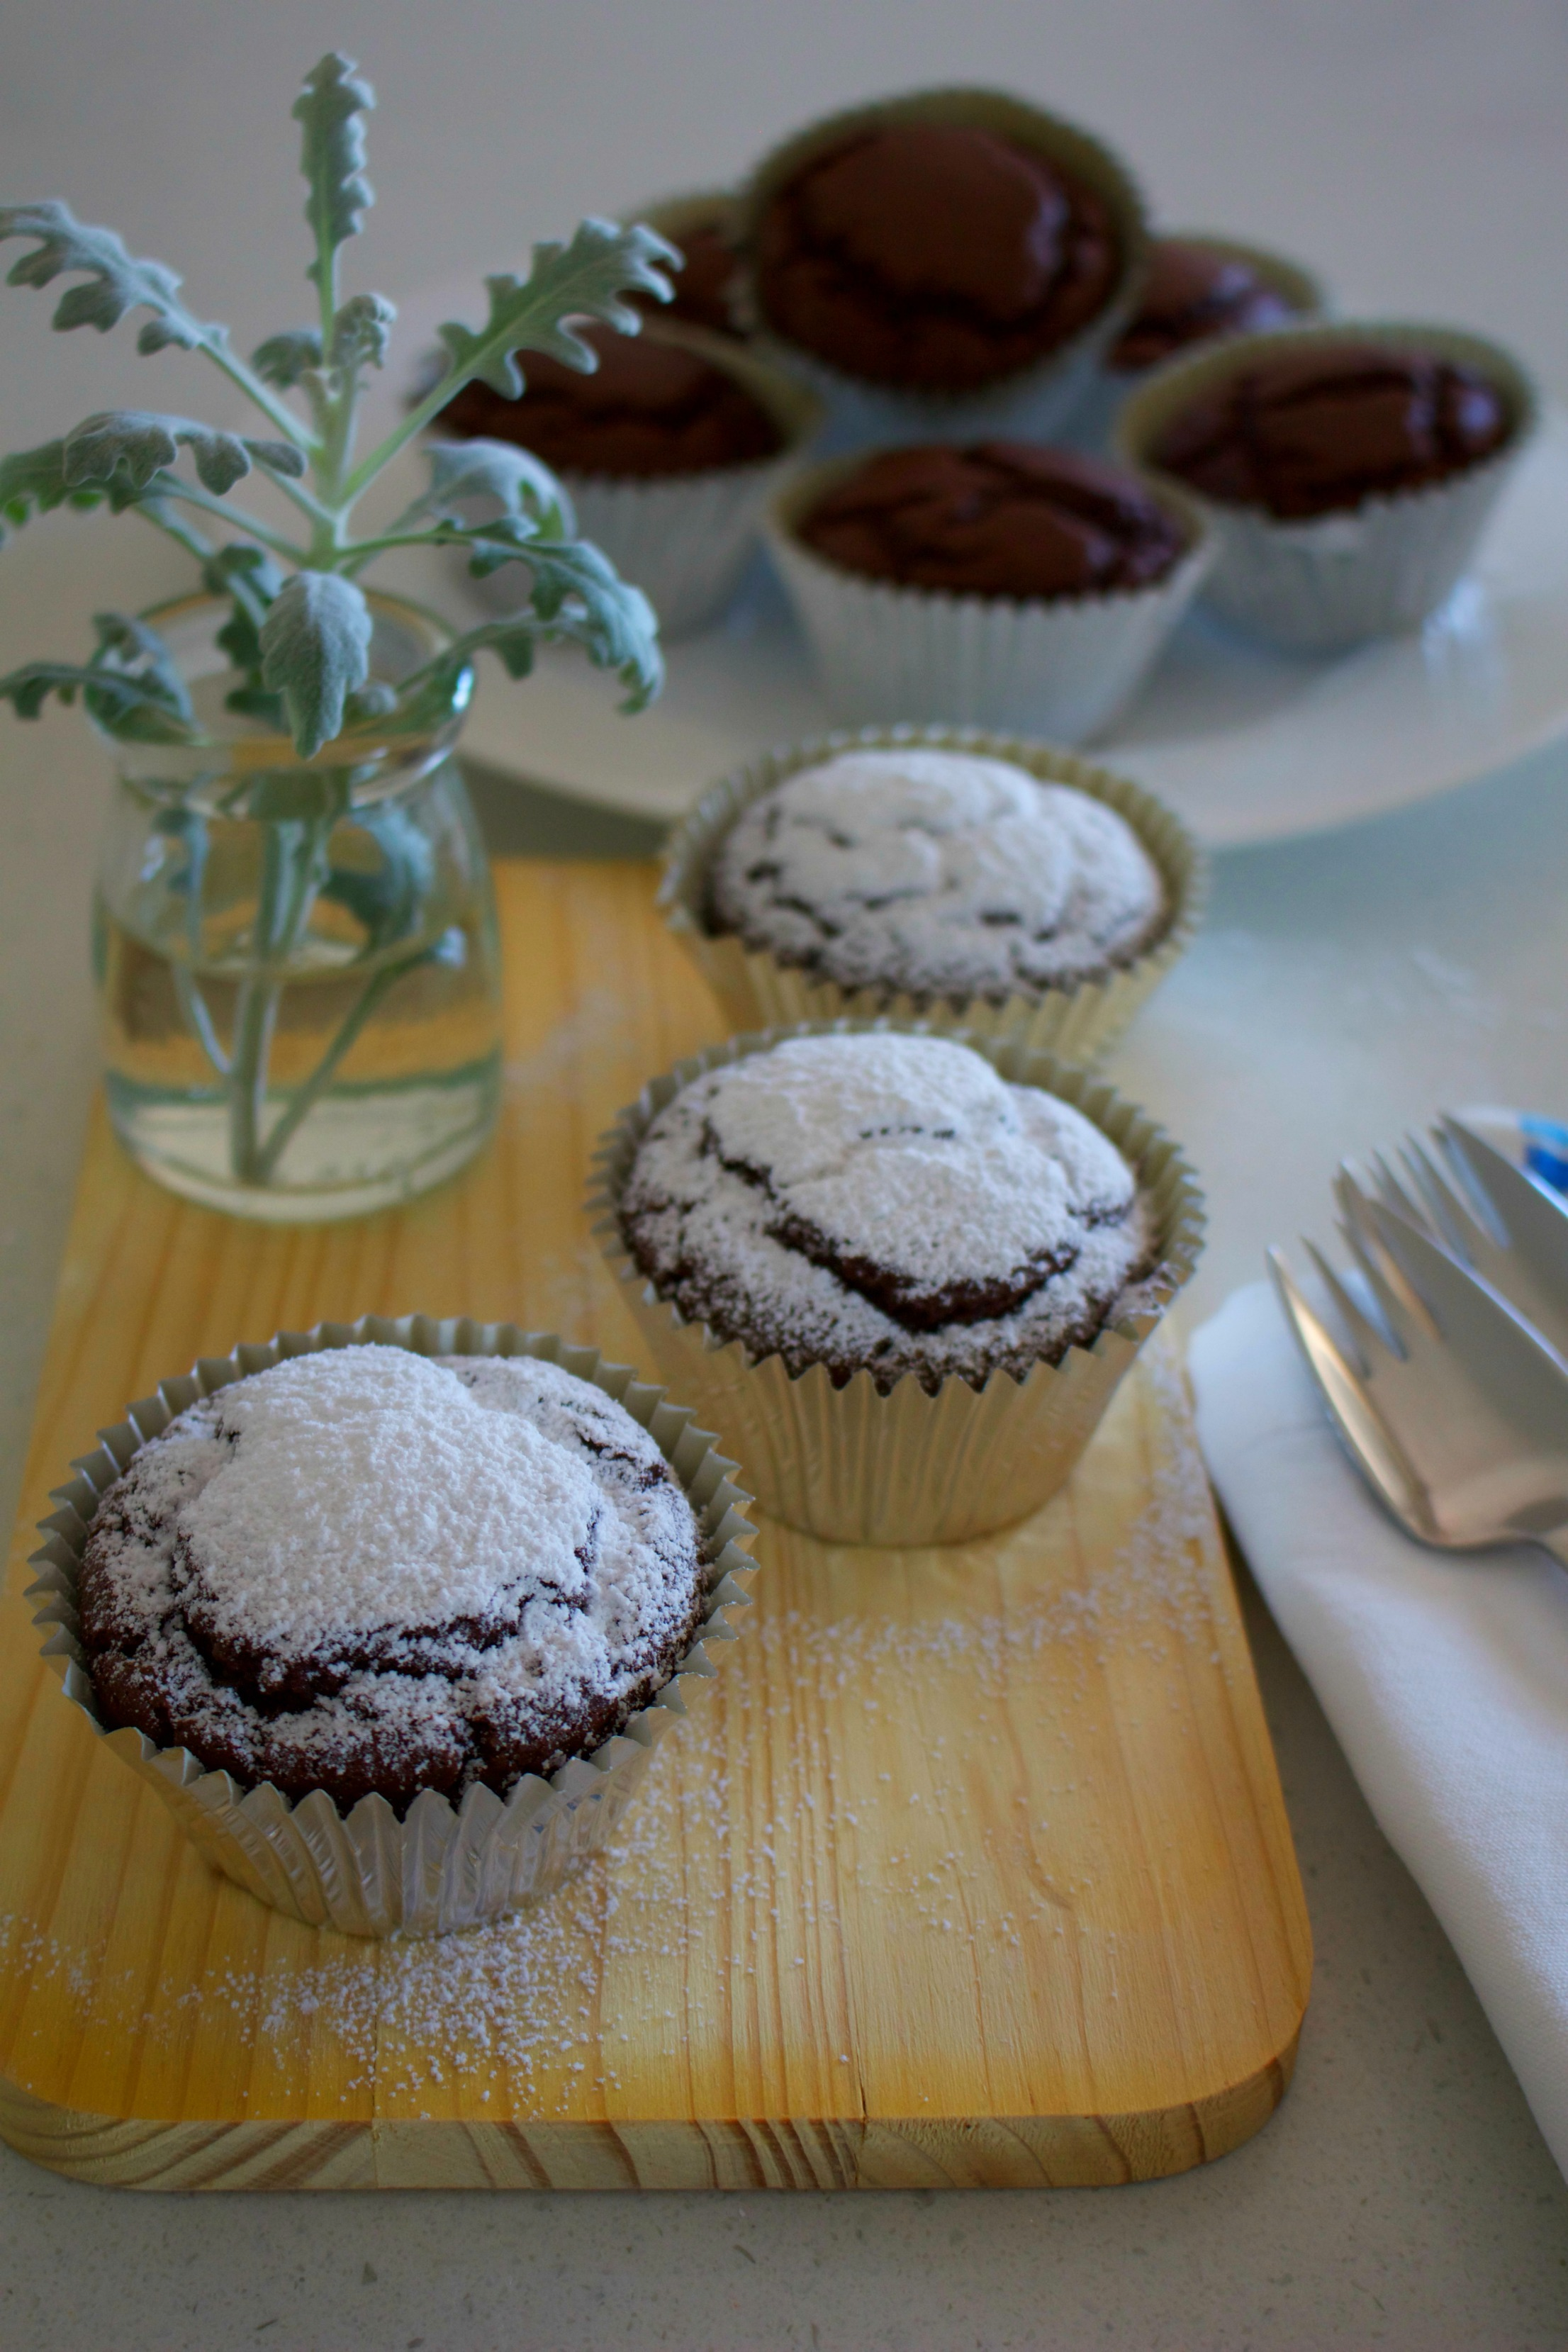 Vegan chocolate and coconut cupcakes